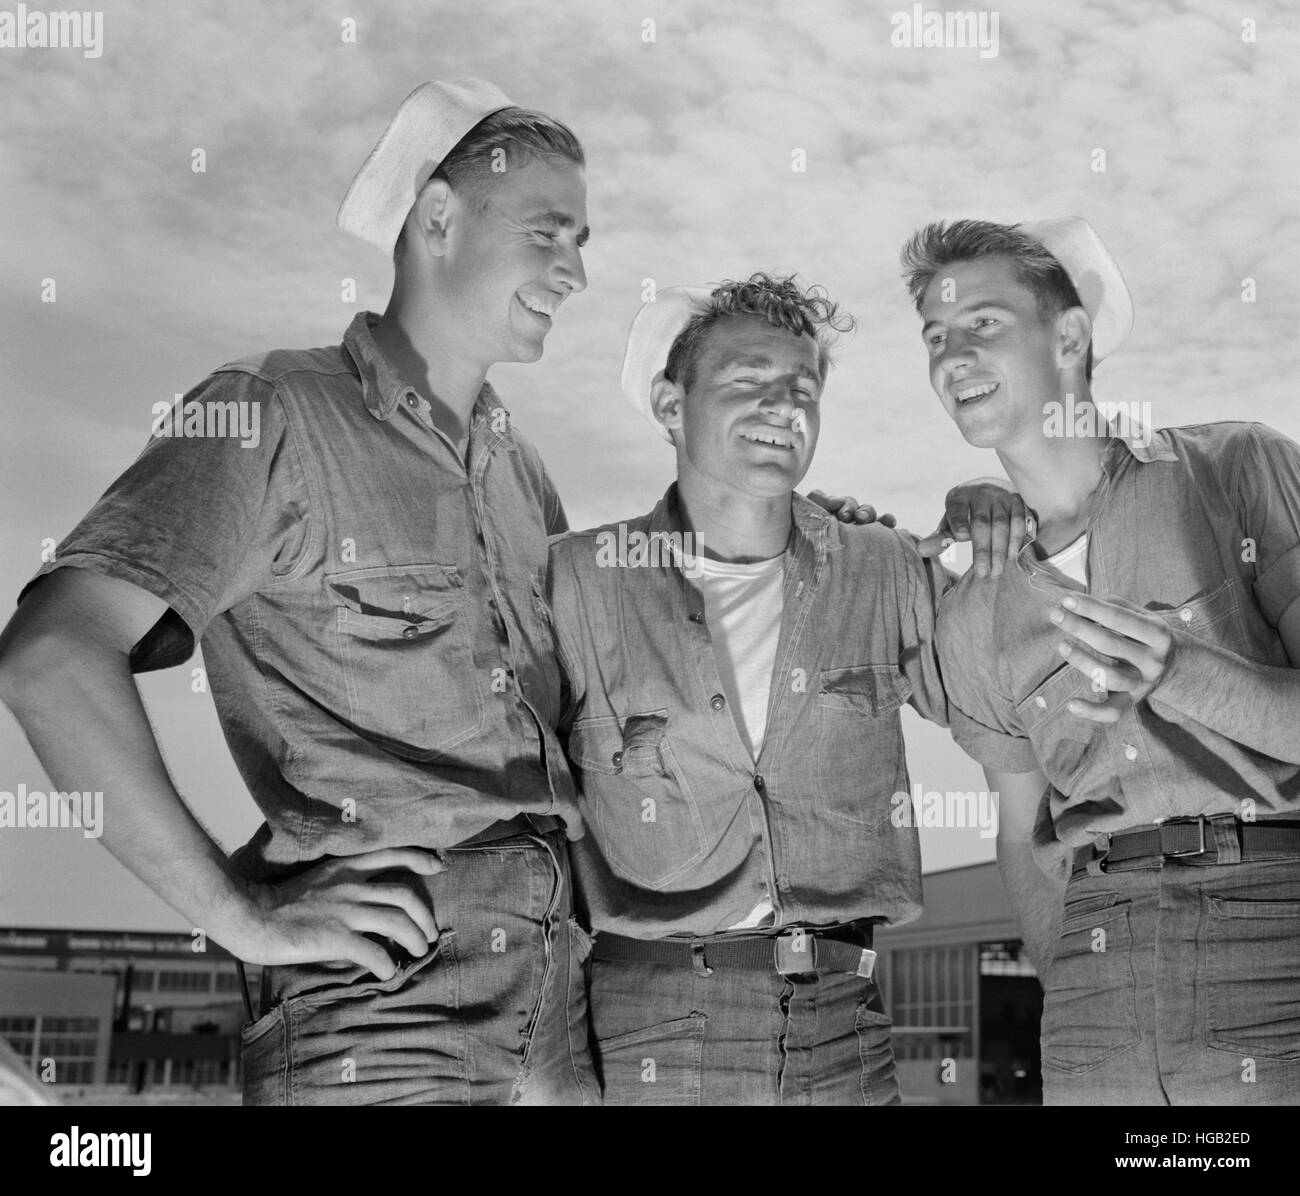 Sailor mechanics laugh over a good story between servicing operations on Navy planes, 1942. - Stock Image